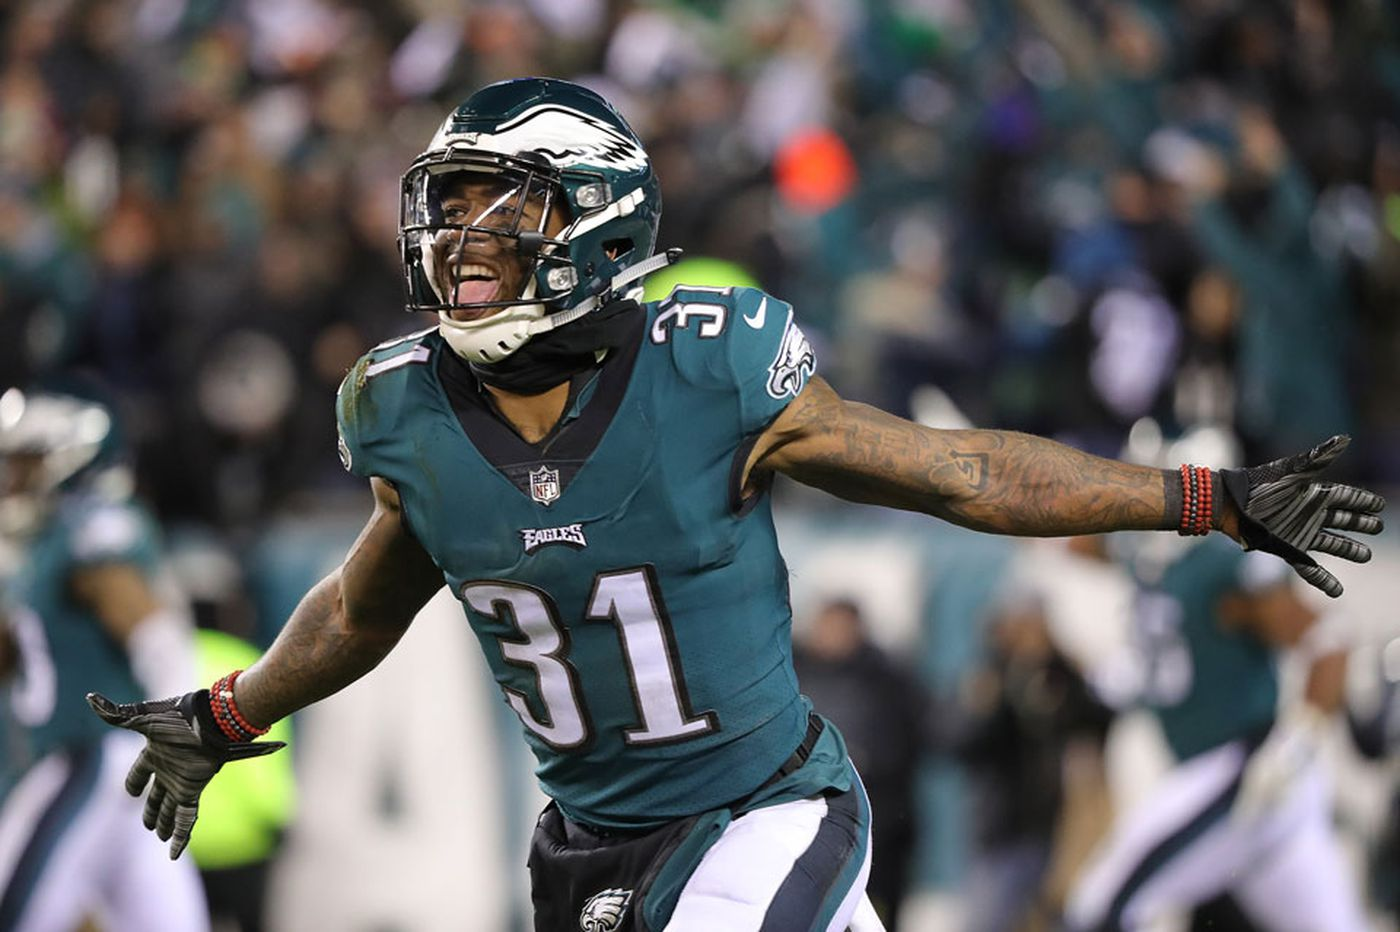 Eagles put cornerback Jalen Mills on injured reserve